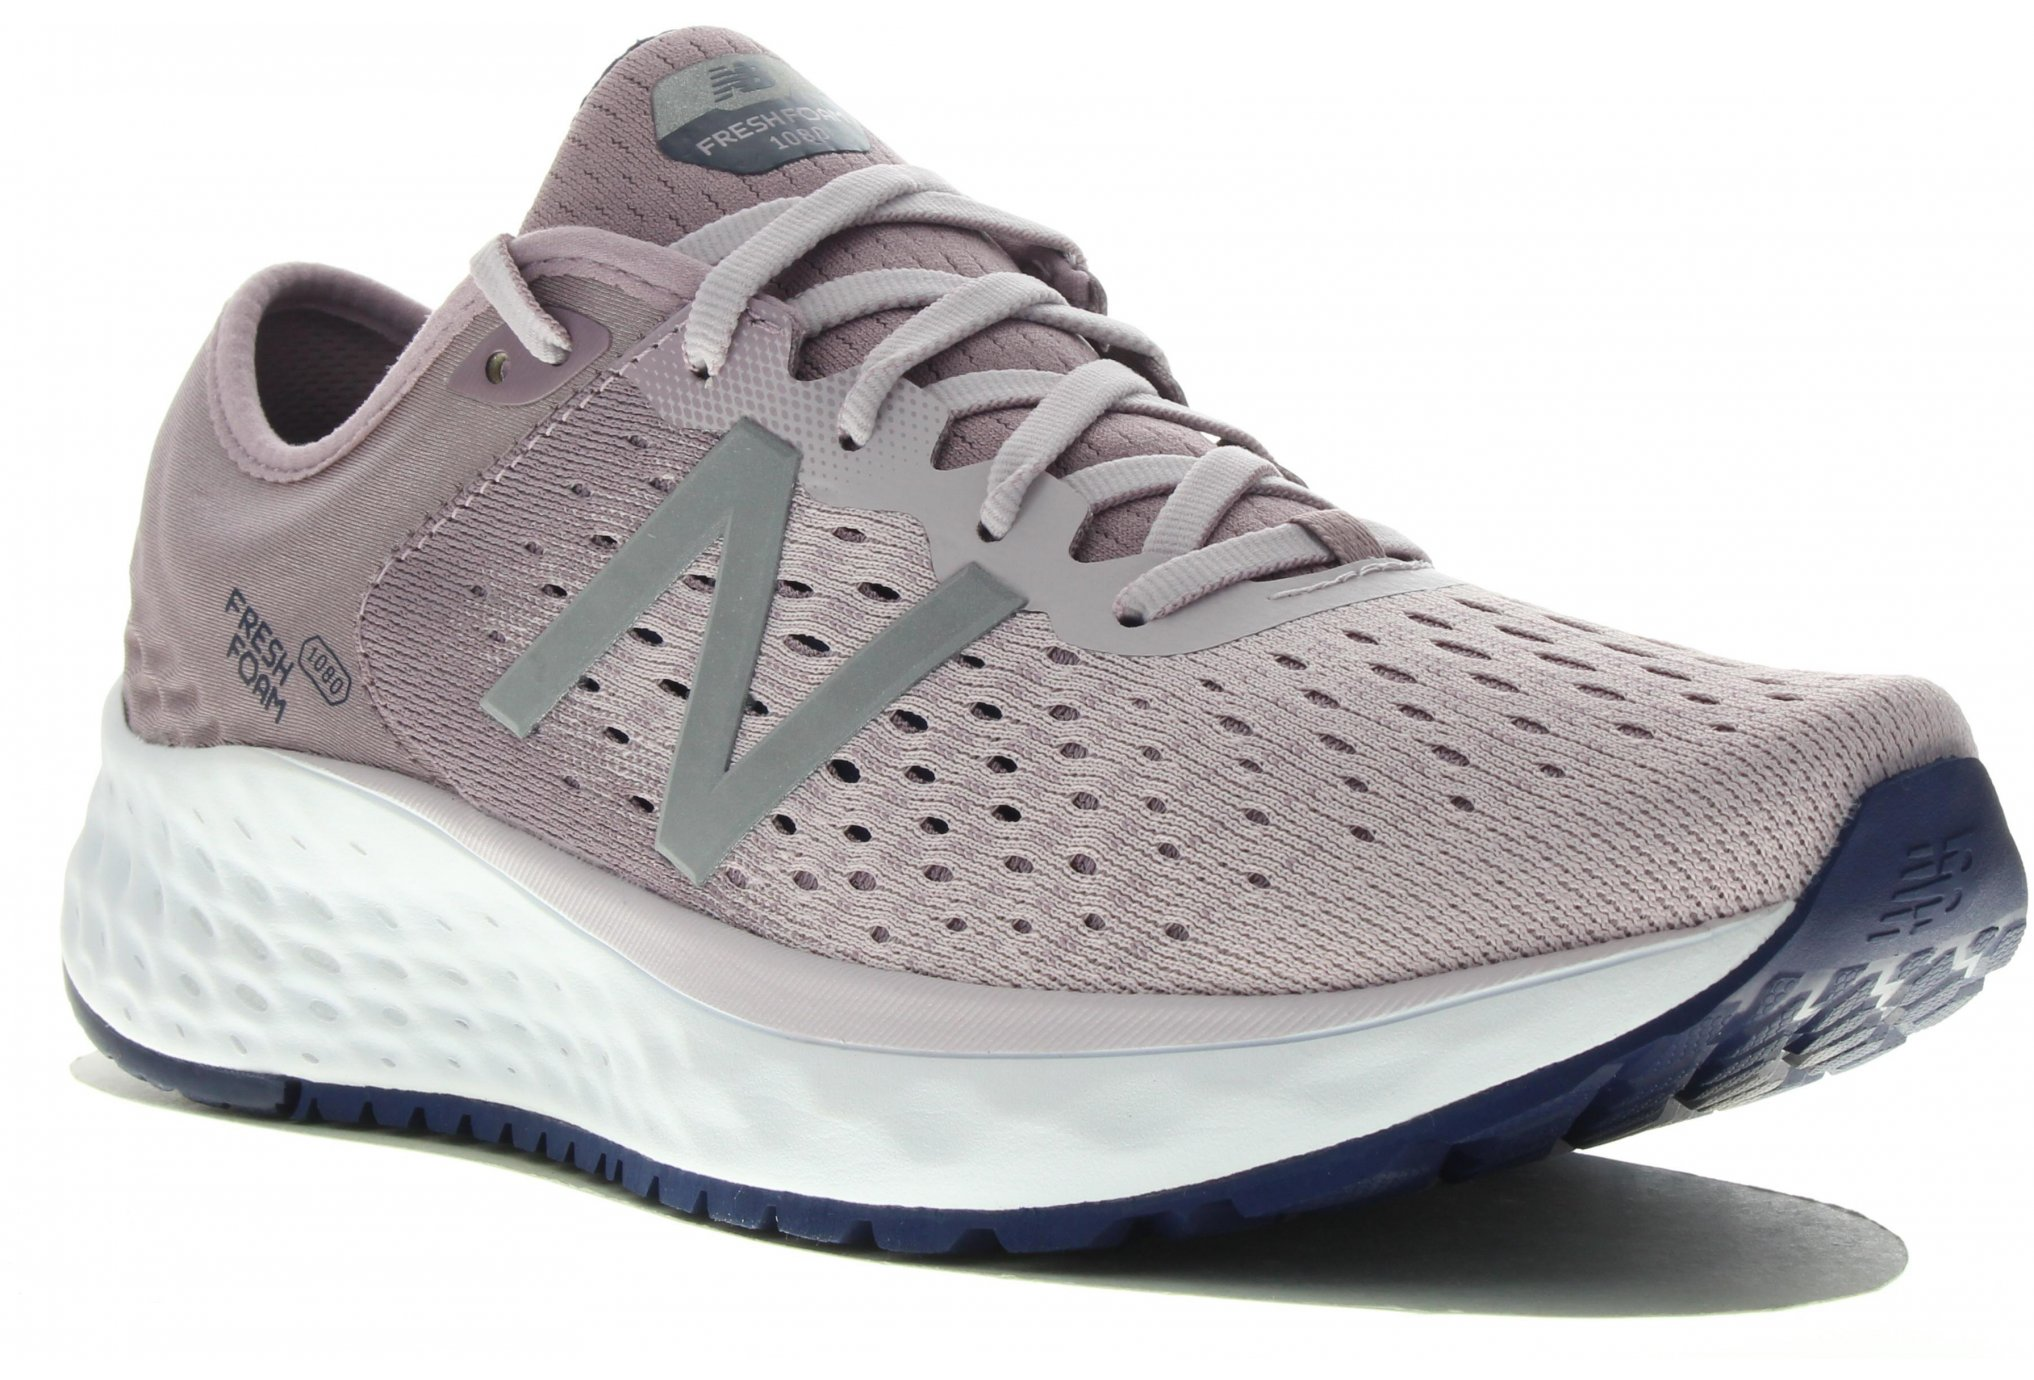 New Balance Fresh Foam W 1080 V9 - B Chaussures running femme